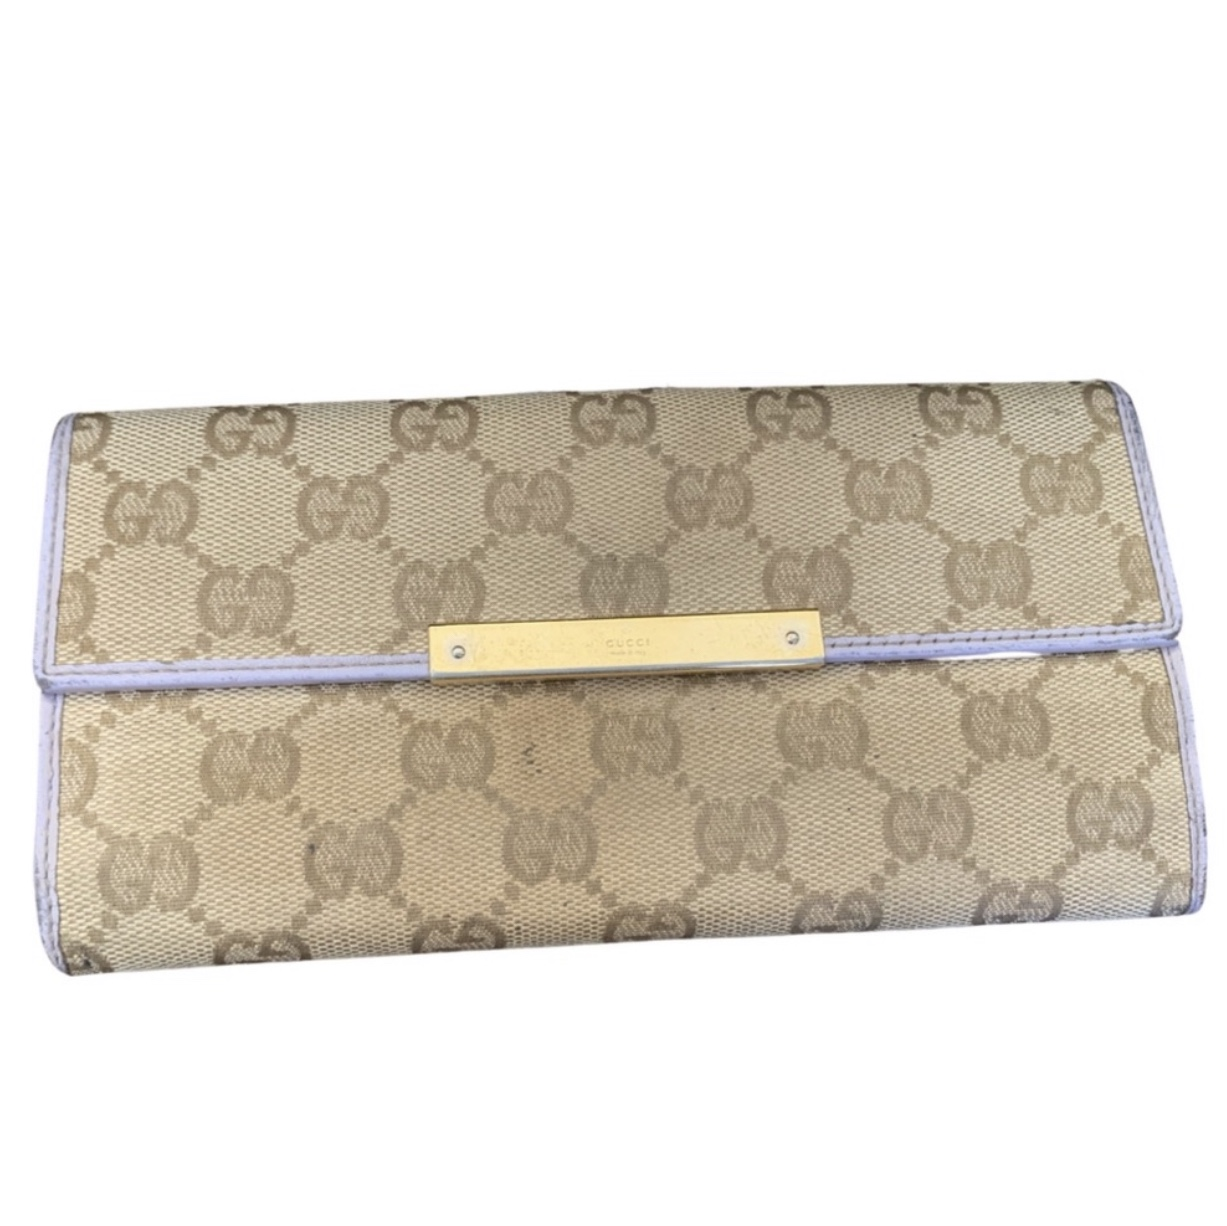 Product Image 1 - Authentic Gucci GG Purple Wallet.